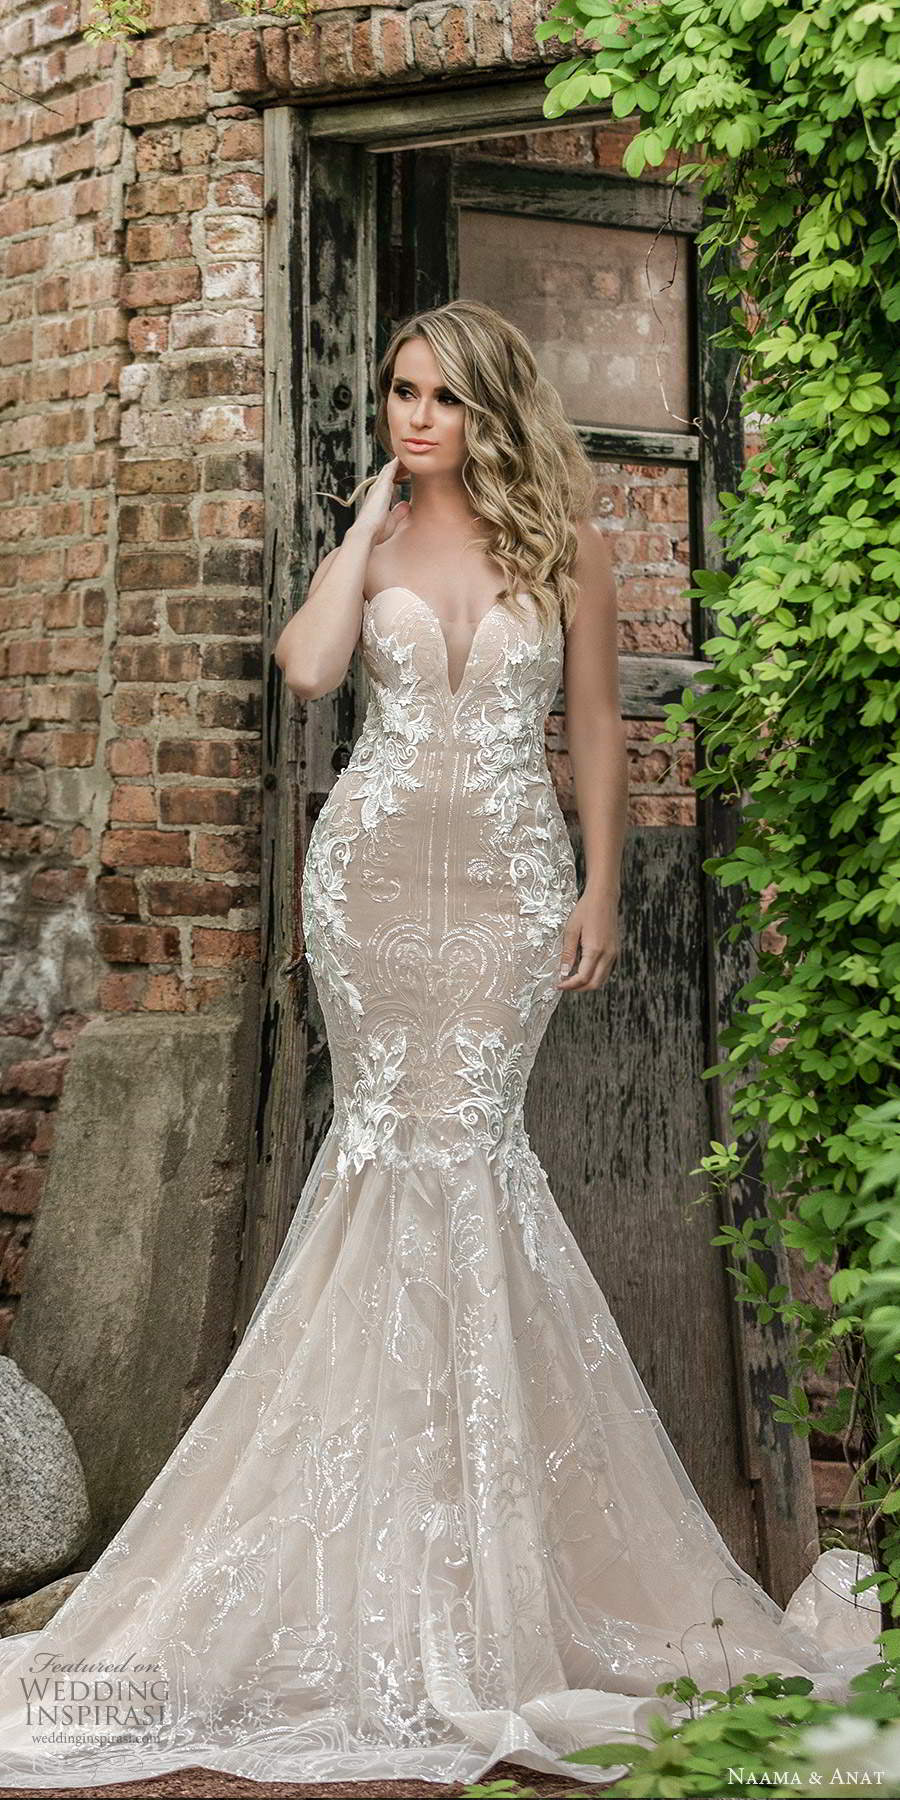 naama and anat 2021 bridal off shoulder sweetheart neckline fully embellished mermaid wedding dress a line ball gown overksirt oatmeal chapel train (4) mv